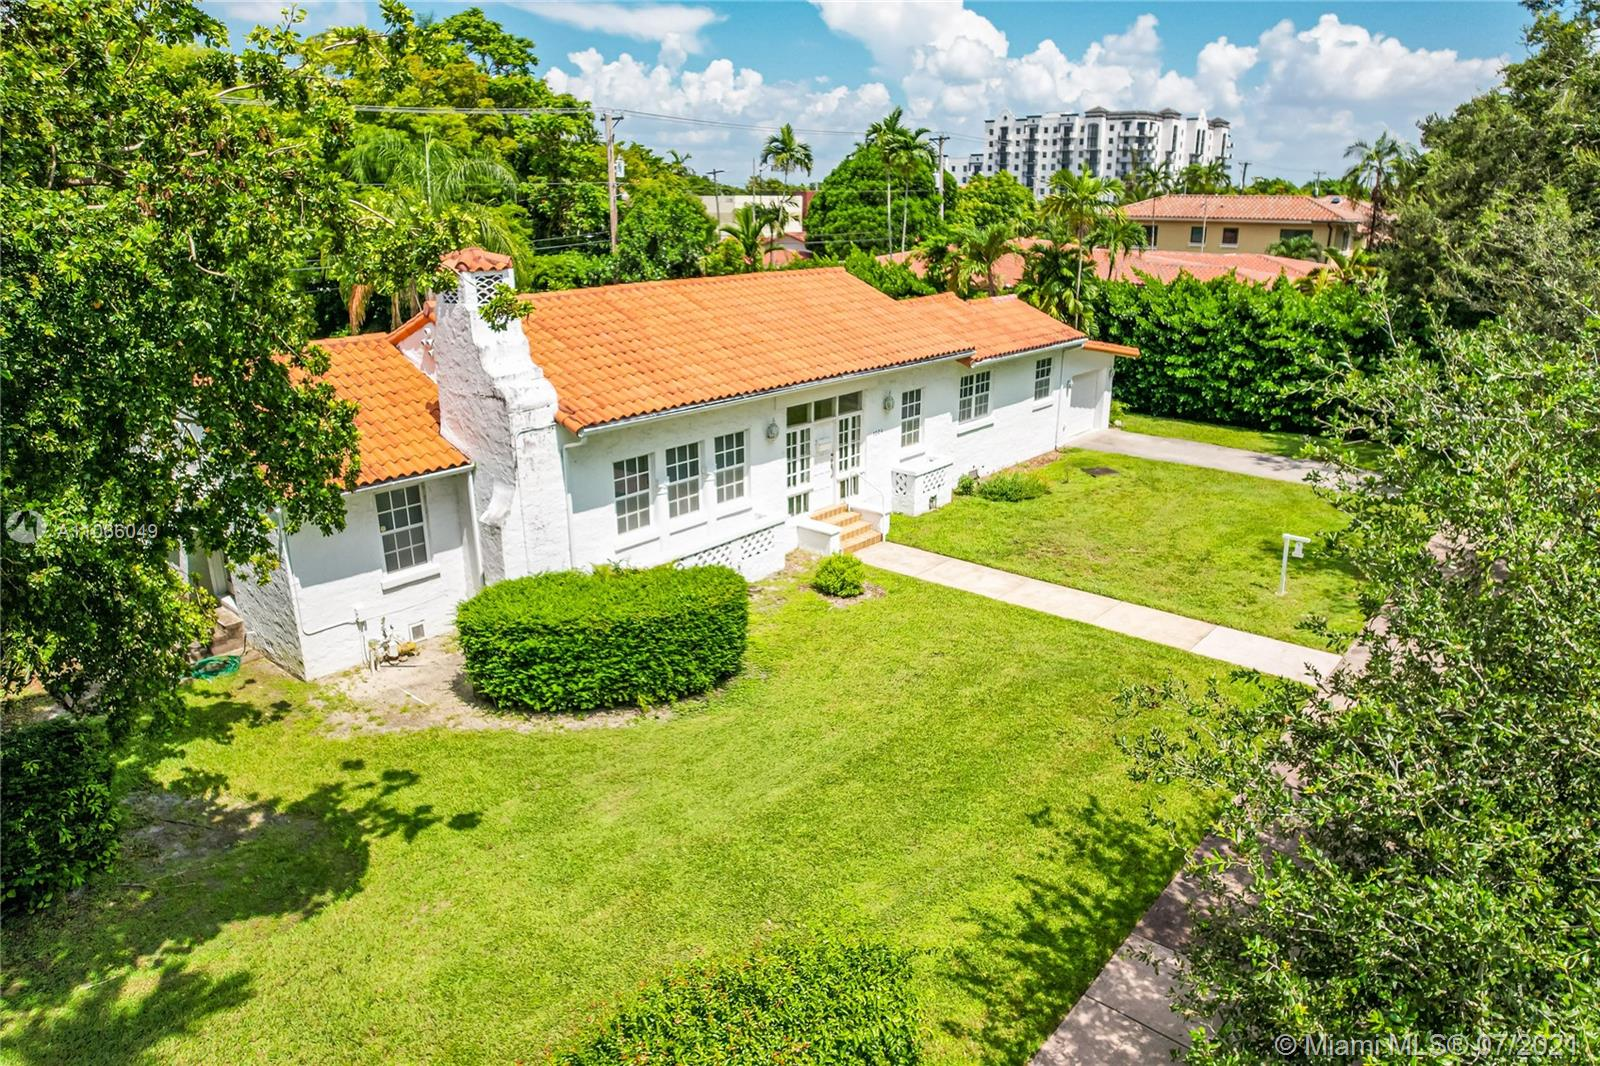 An original 1923 Mediterranean Revival historic home, commissioned by George Merrick, and designed by renowned architect Elliot Kiehnel. It sits on nearly an acre of land. The home features 3 bedrooms, 2.5 bathrooms, and a spacious living room overlooking the beautiful yard. A separate studio space offers lots of potential for an in-law suite, studio, or guest-house. Some historic features include the coral wall along 57th avenue, the stone walk-way and the outdoor coral fire-pit, and several coral structures. There are abundant trees and foliage including avocado, tamarind, mango, star fruit, egg fruit (canistel), and a Chinaberry tree. This home is a diamond in the rough, just waiting to be restored to your liking.